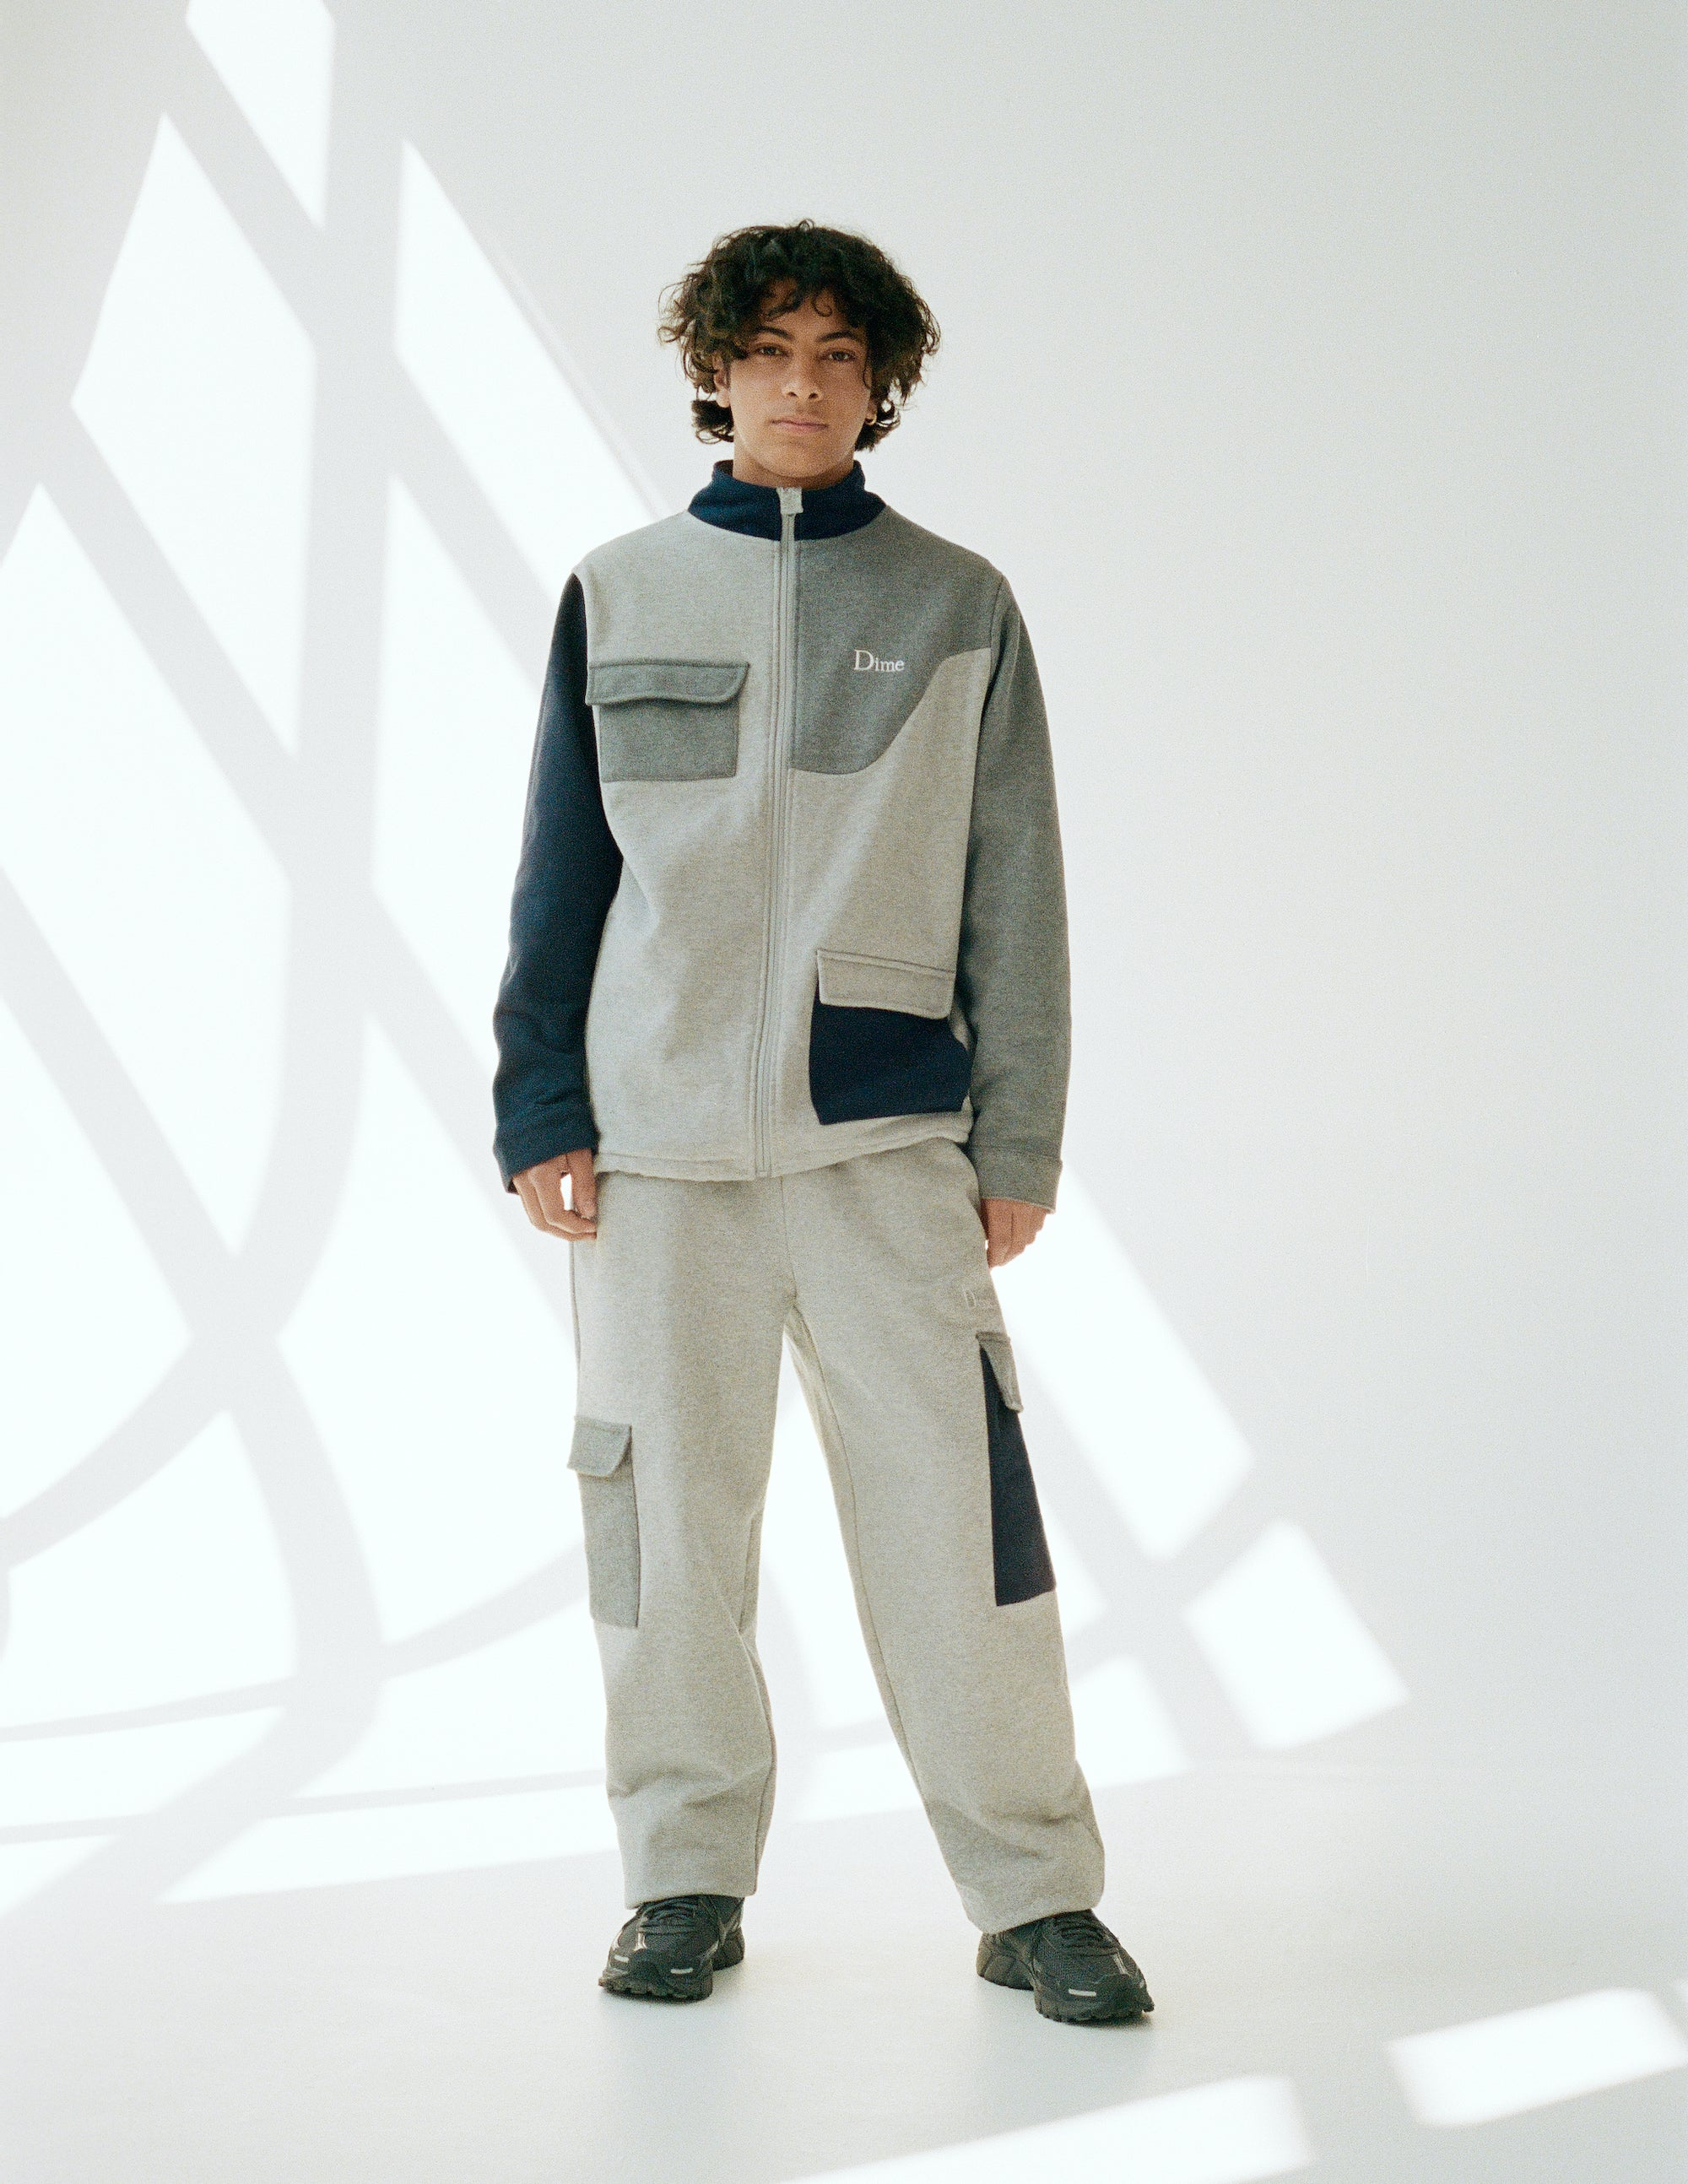 Dime Spring 2021 Lookbook Brushed Cotton Track Jacket in Heather Multi styled with Brushed Fleece Cargo Pants in Ash Gray